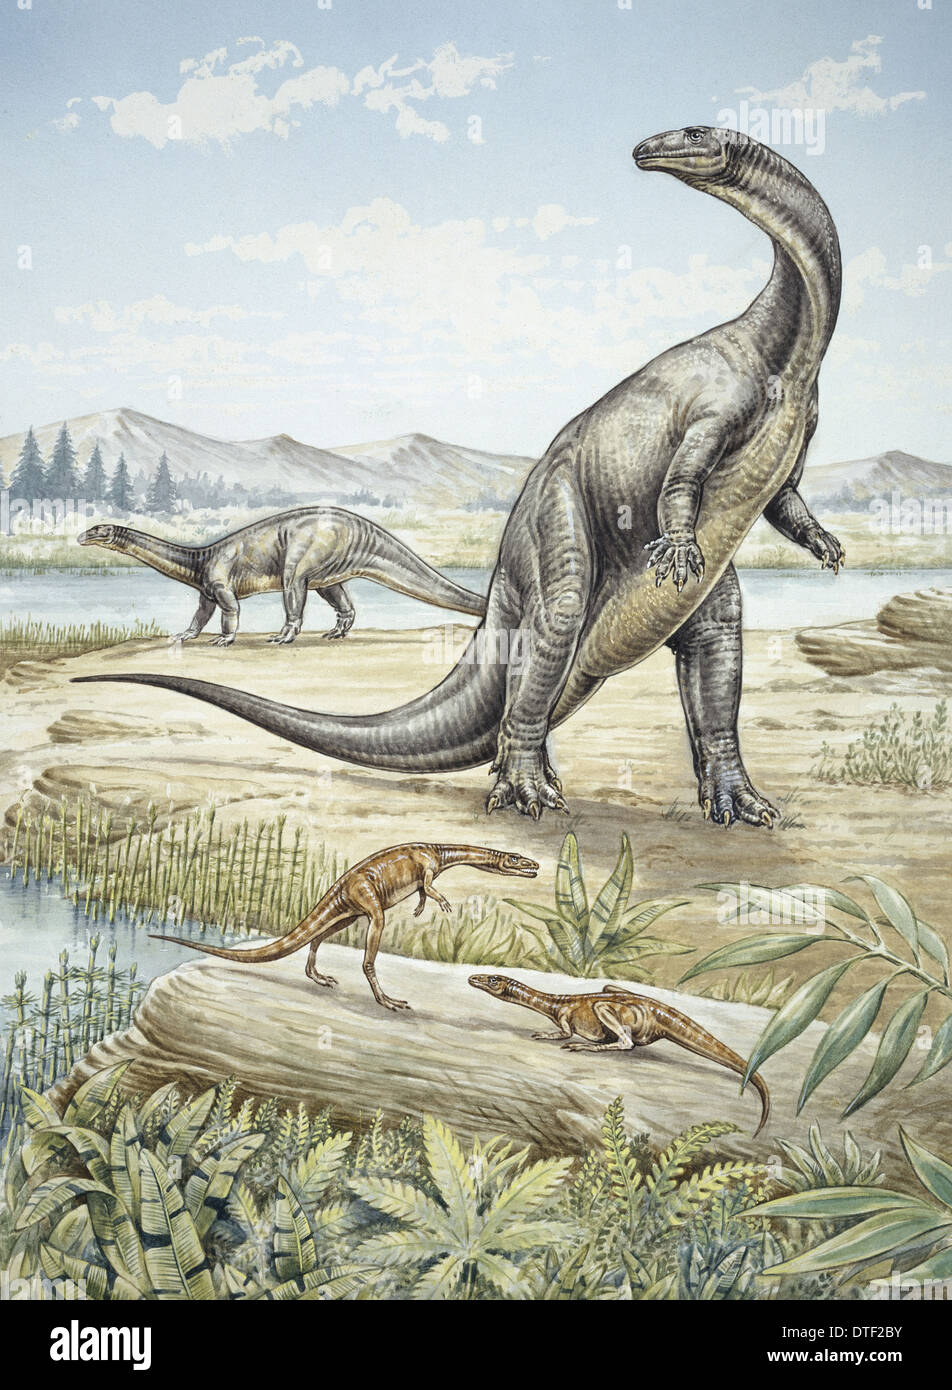 Upper Triassic dinosaurs discovered in Southern Germany - Stock Image